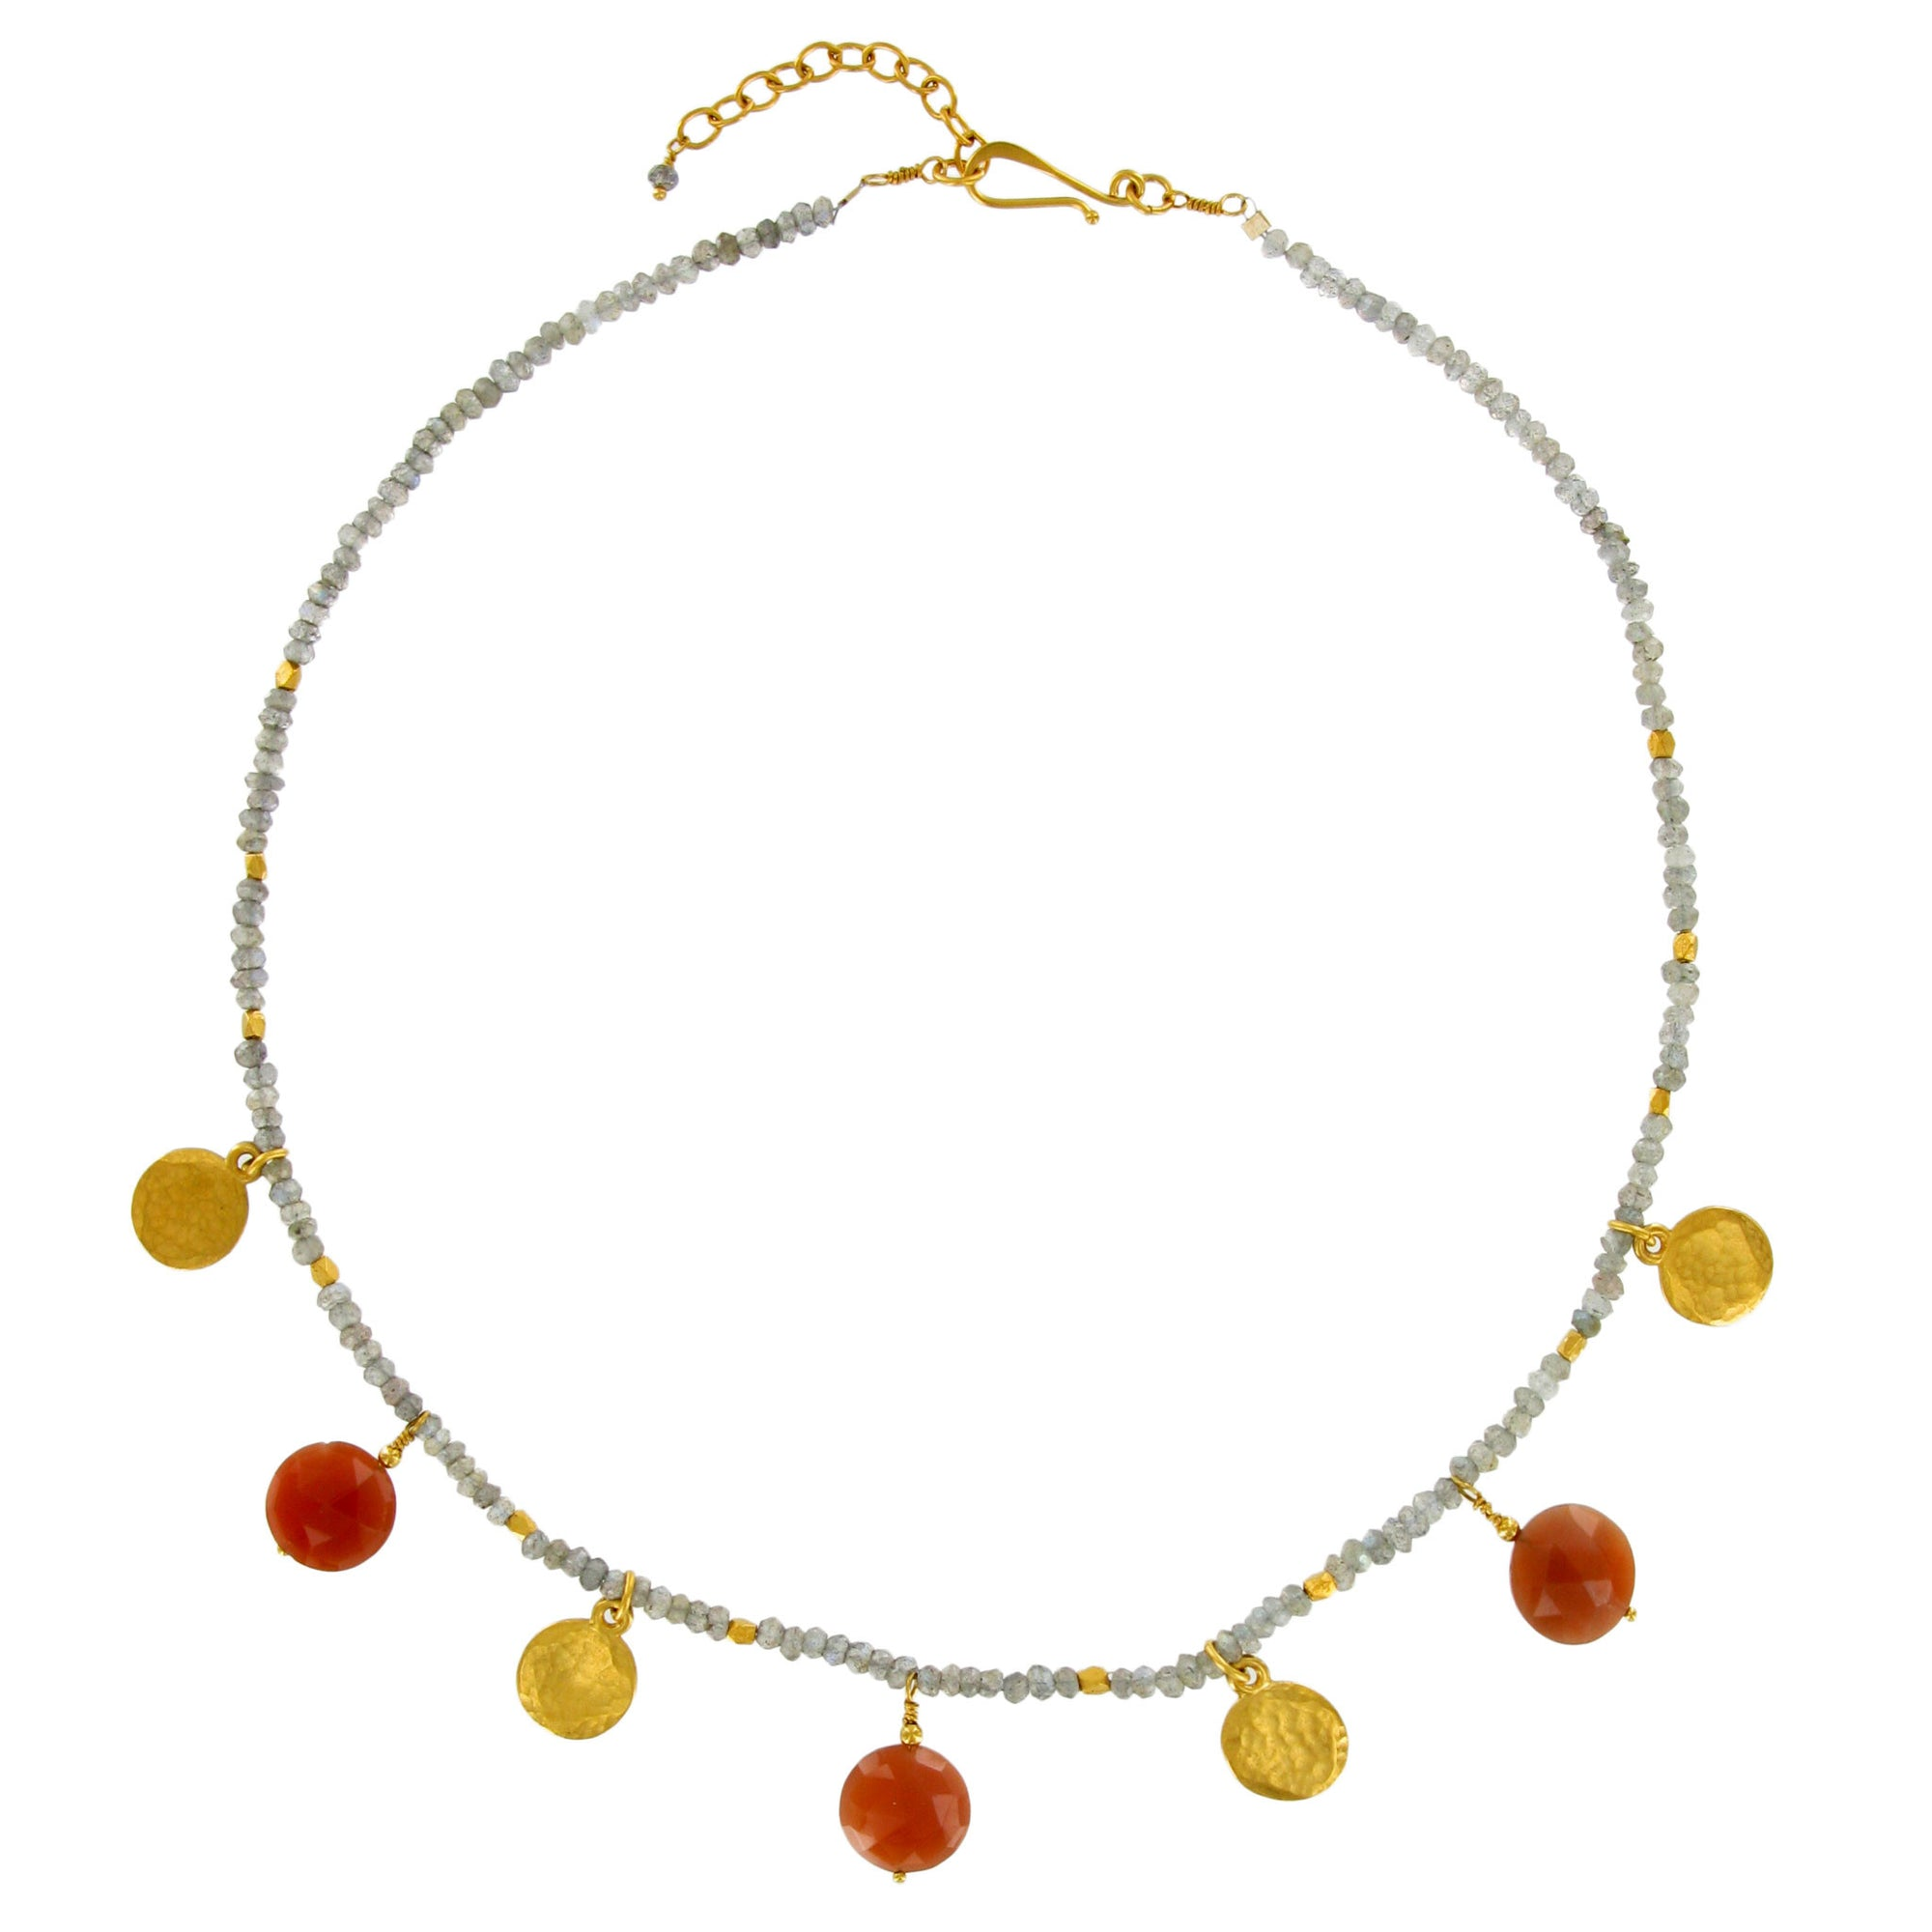 kundan bead dubai semi necklace auraa red precious buy of jewellery stone shopping and trends